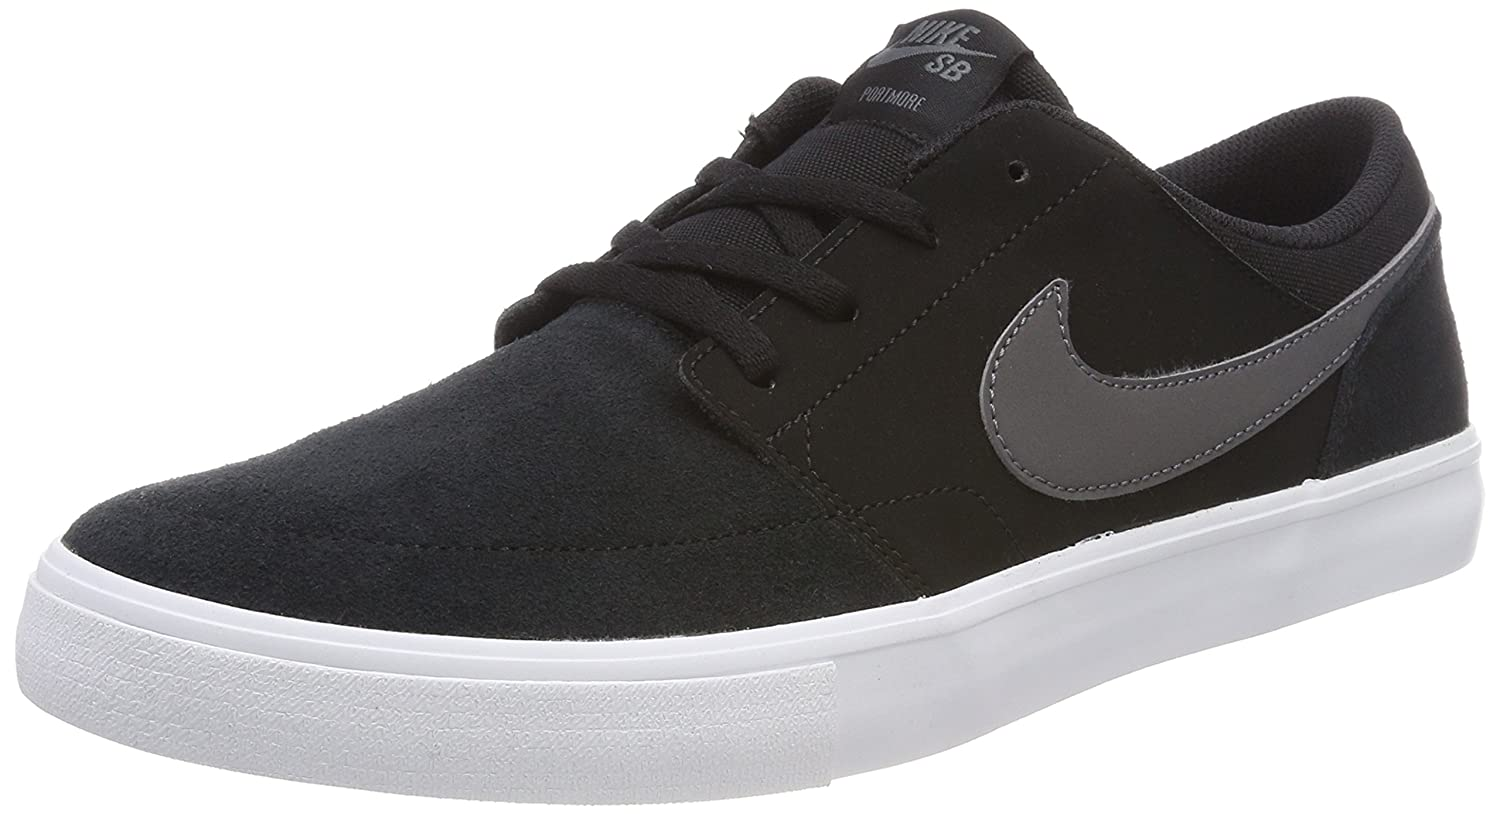 Black Nike Sb Portmore shoes